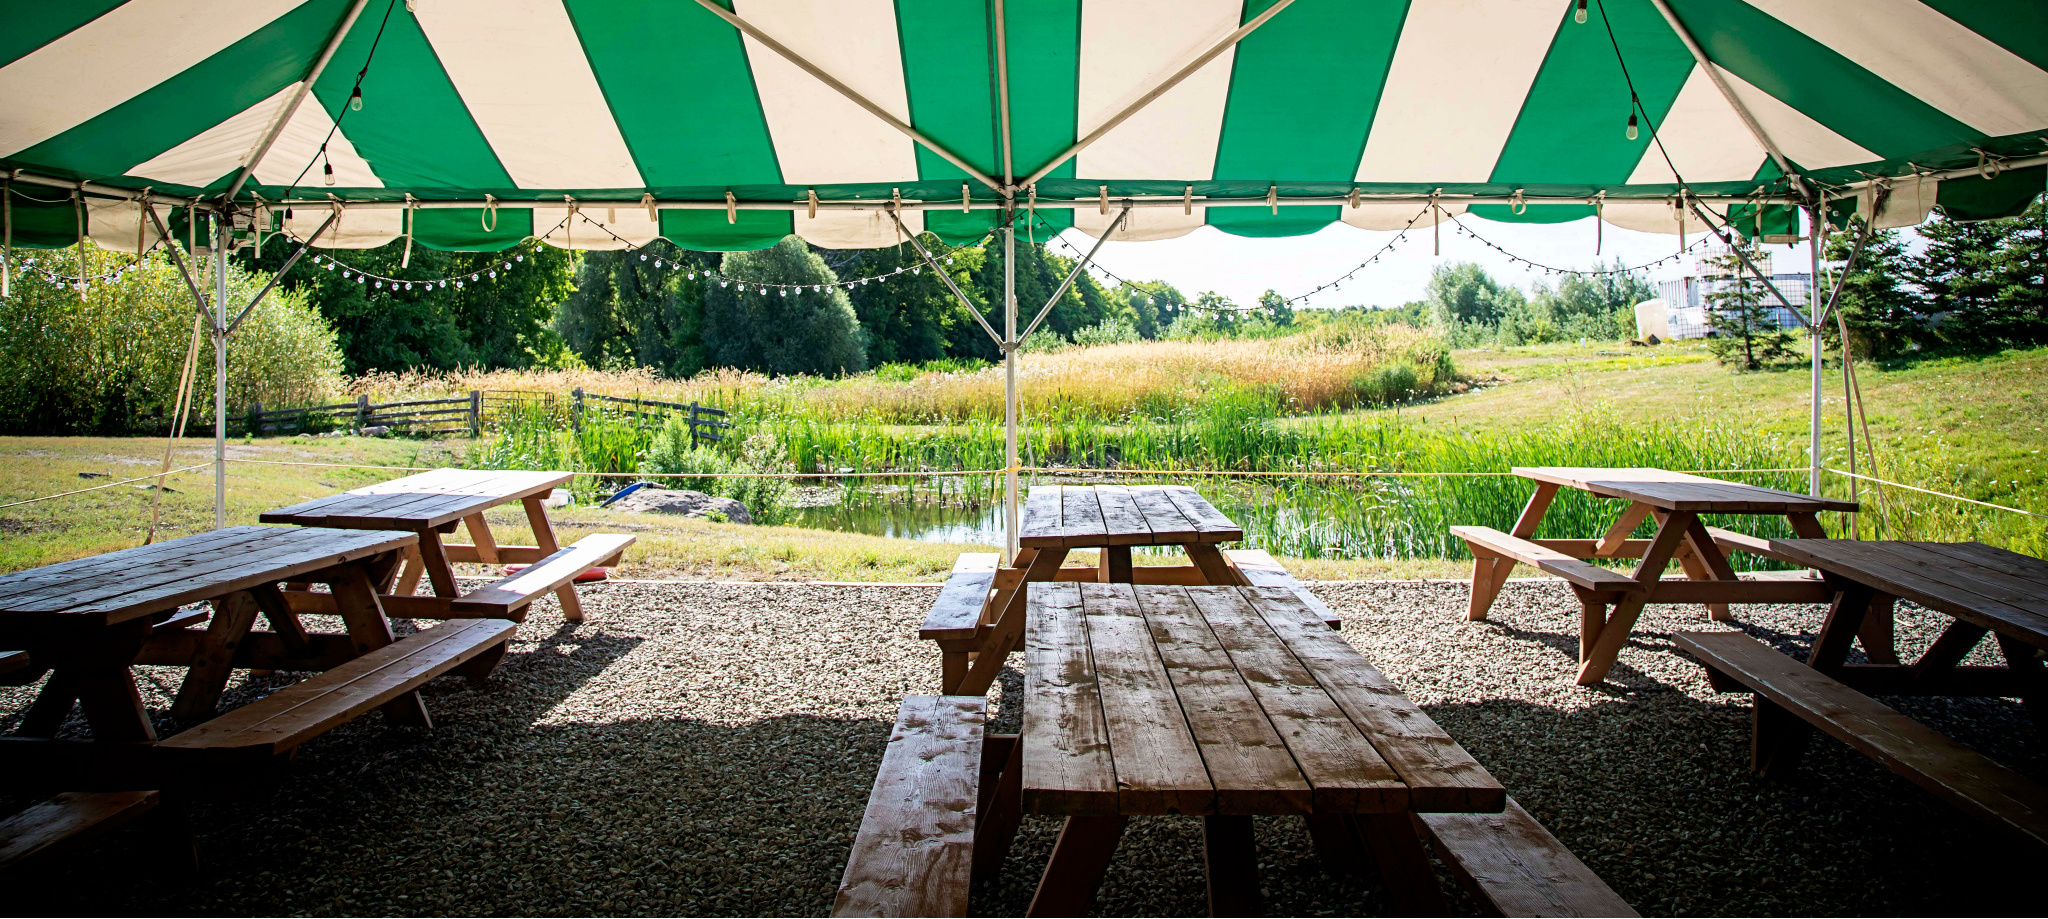 The outdoor dining at Spirit Tree is in the Tent